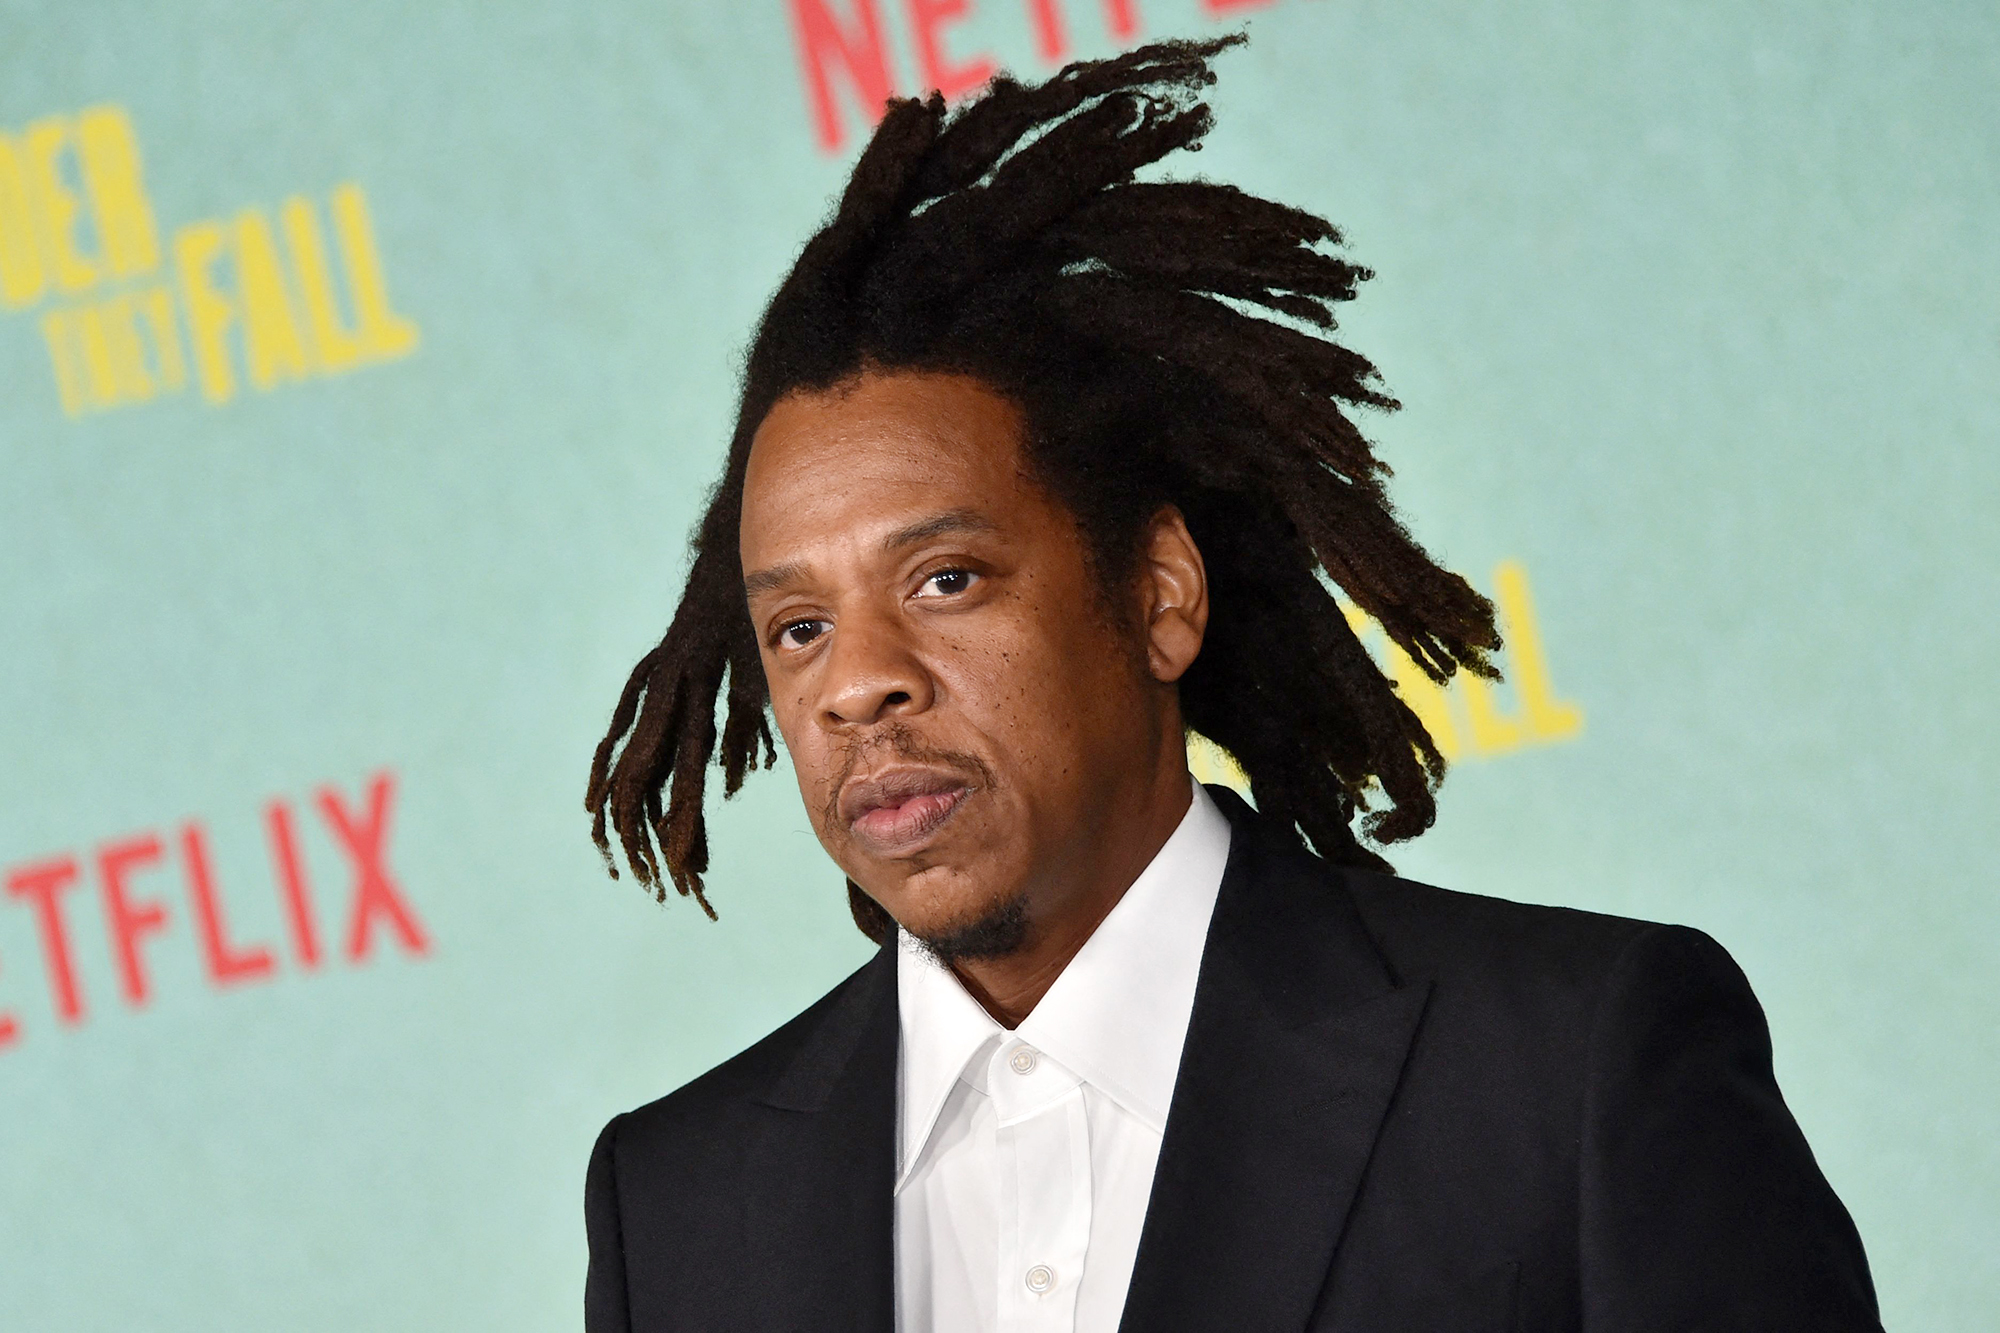 Parlux filed the lawsuit in Manhattan Supreme Court in 2016, claiming Jay-Z declined to push the perfume.